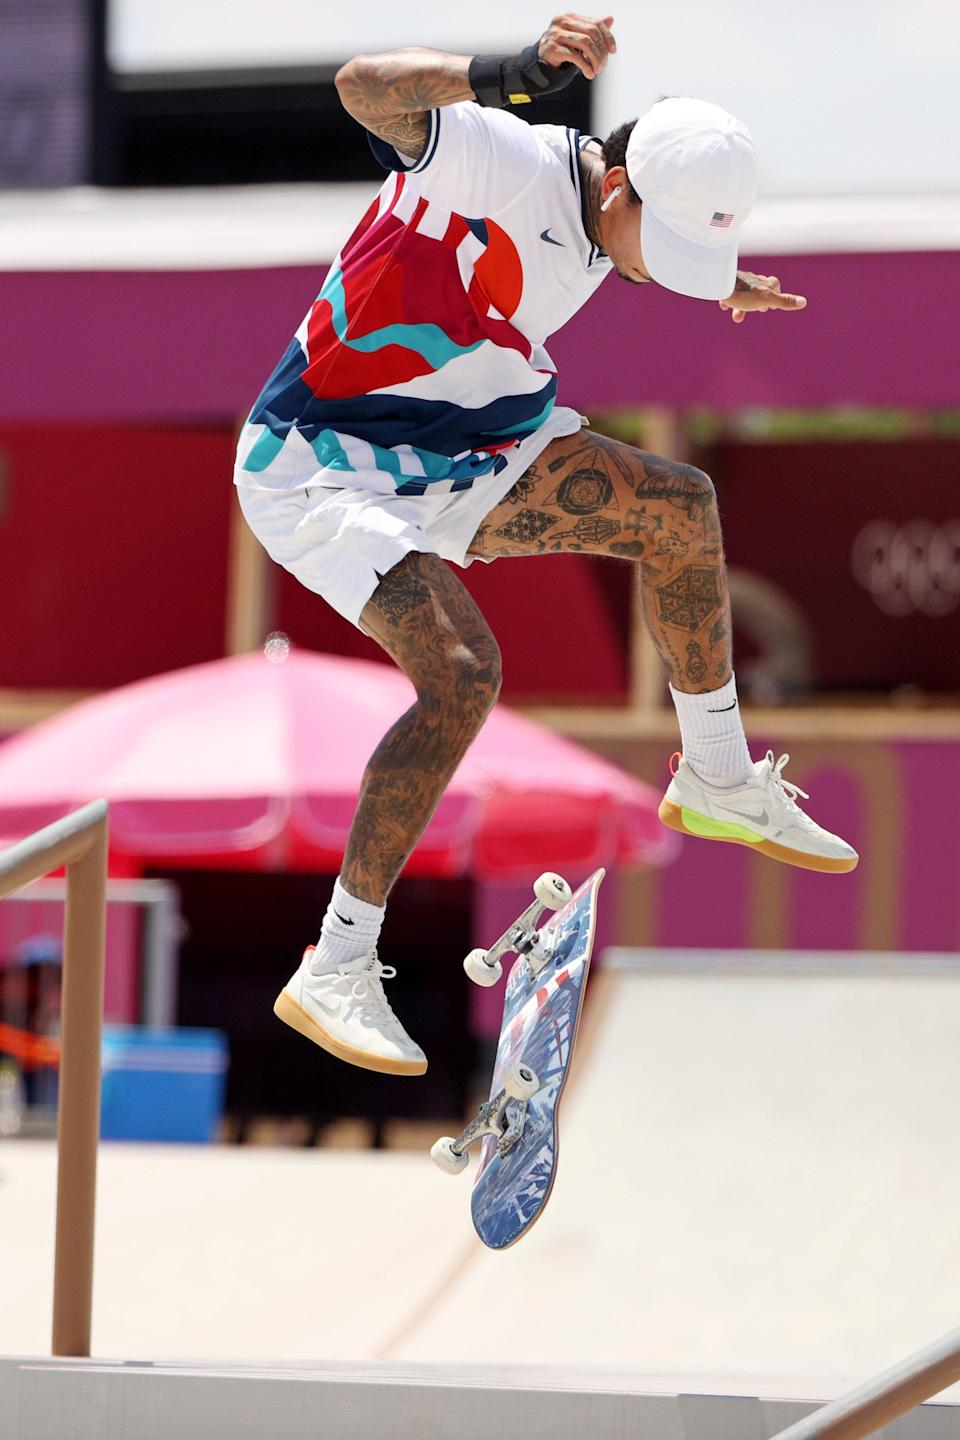 Nyjah Huston, who ranked seventh, during the men's street finals.